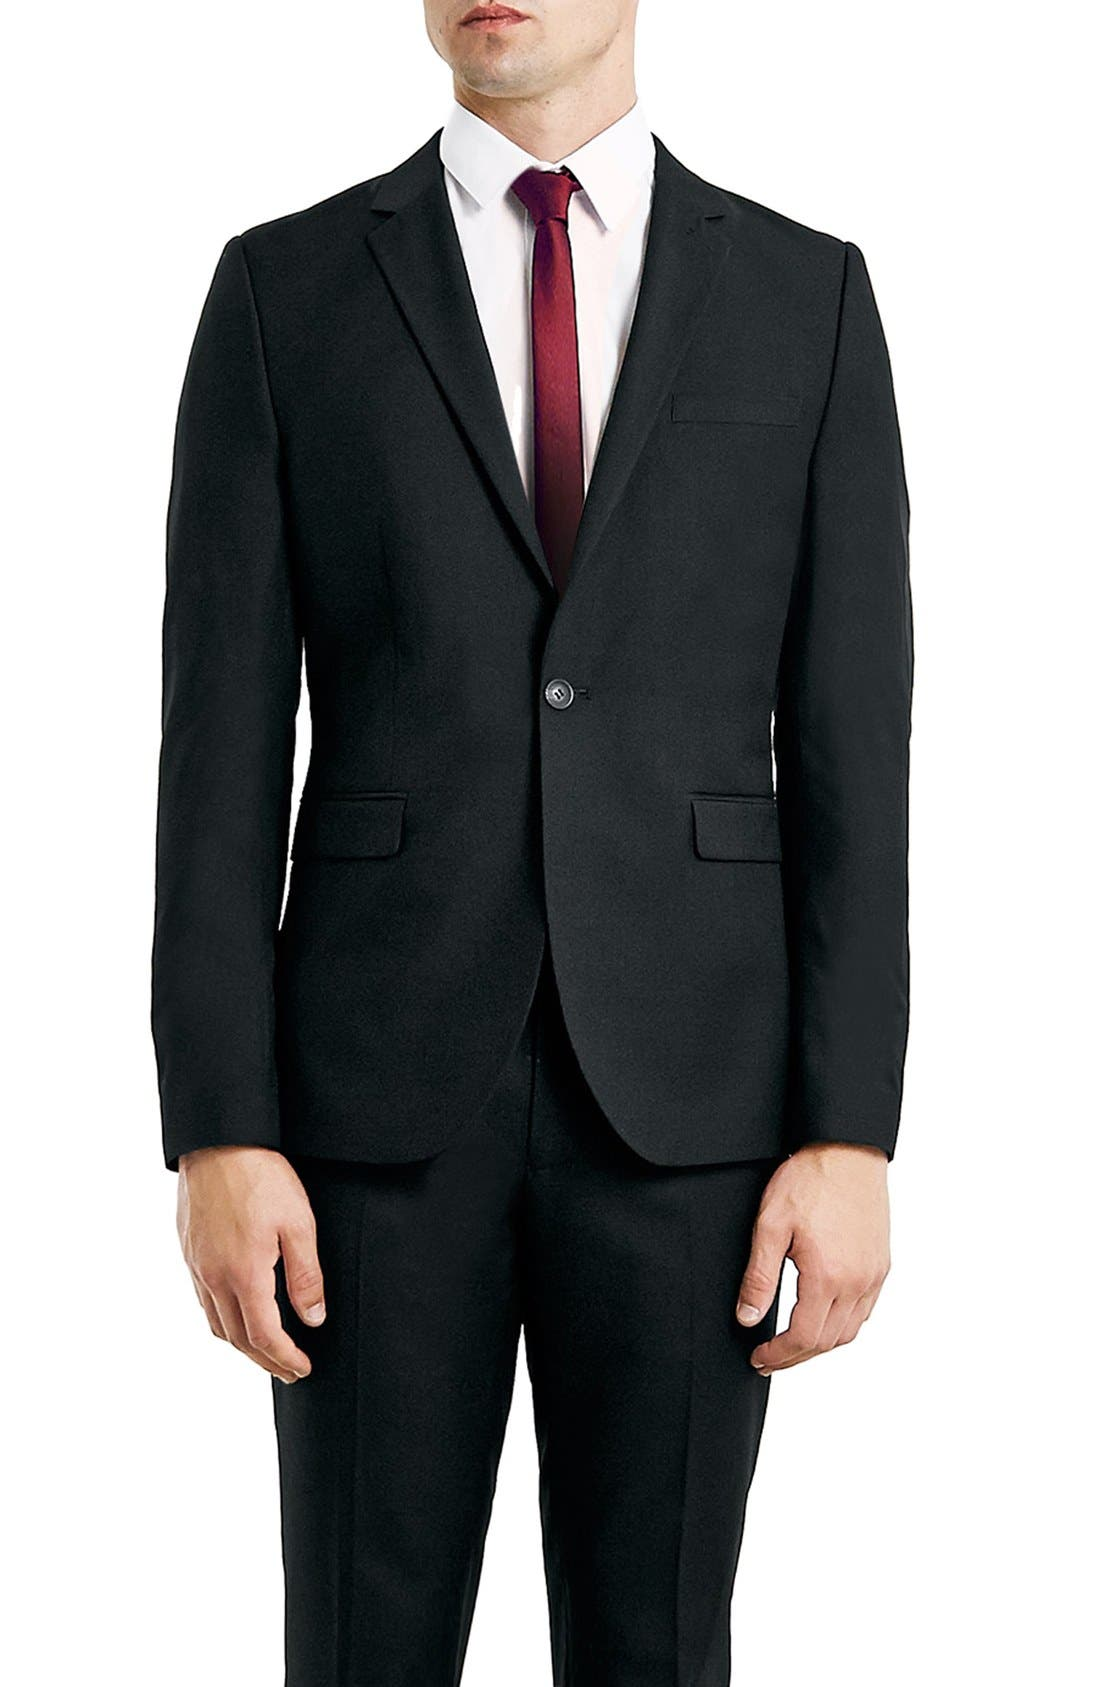 Main Image - Topman Skinny Fit Black One-Button Suit Jacket